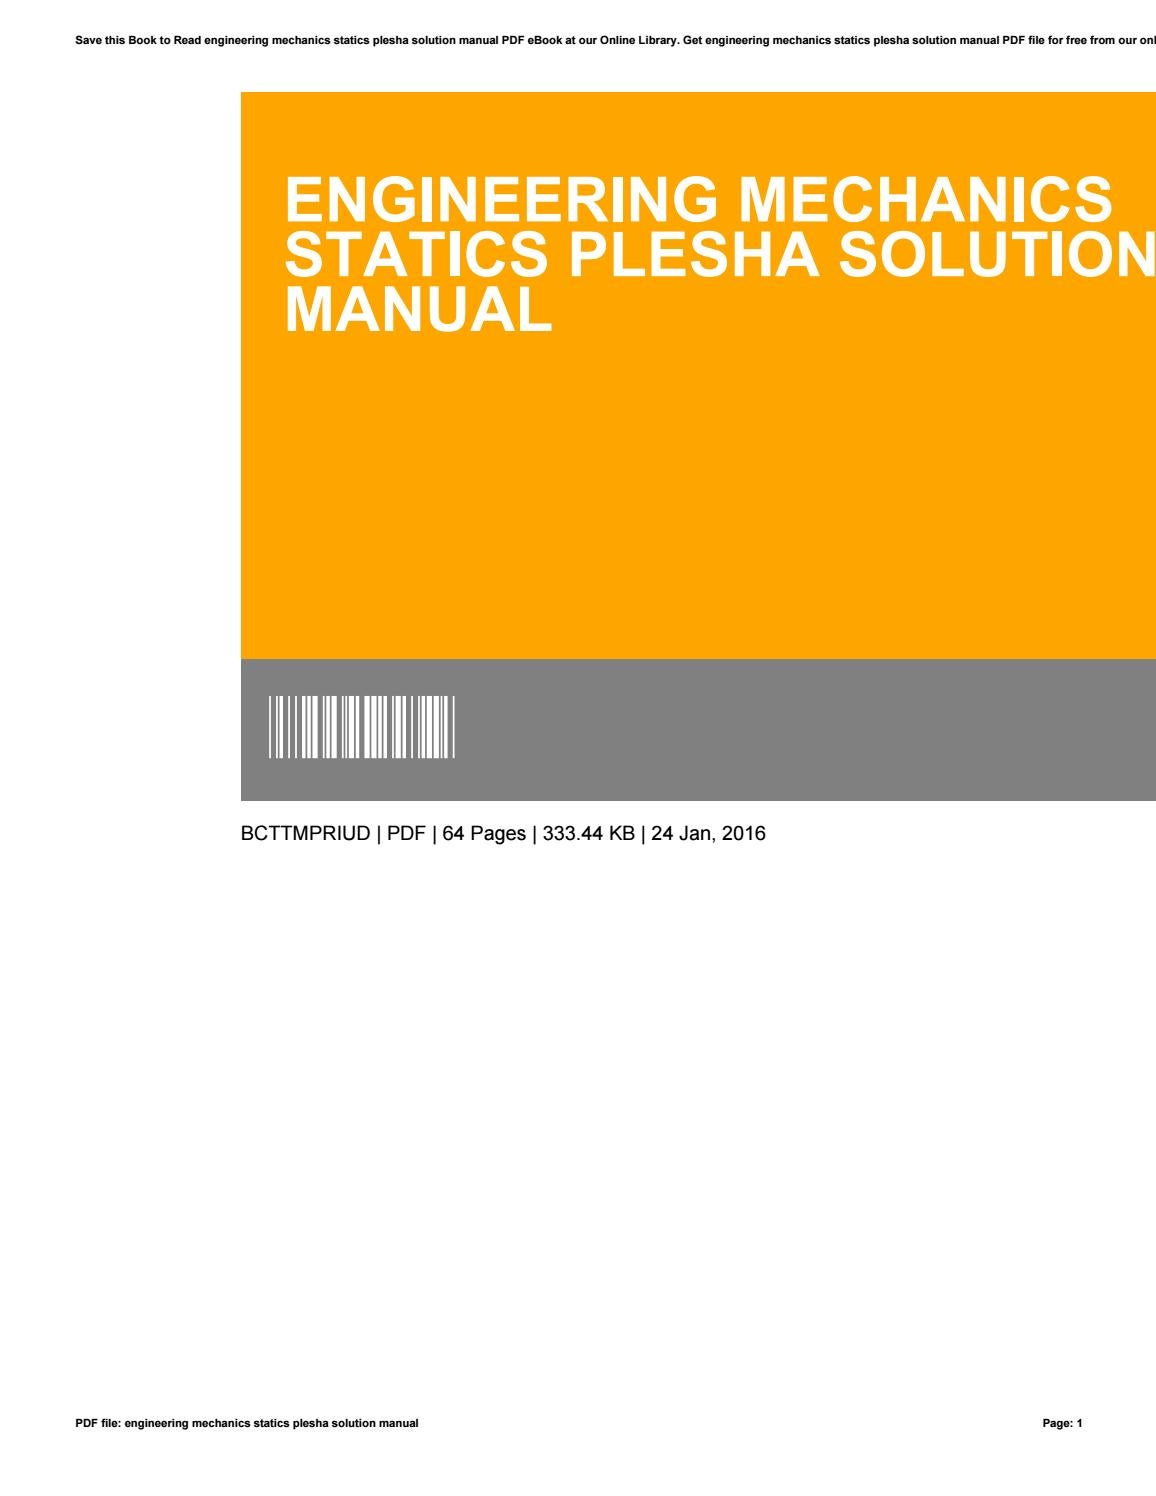 engineering mechanics statics plesha solution manual pdf